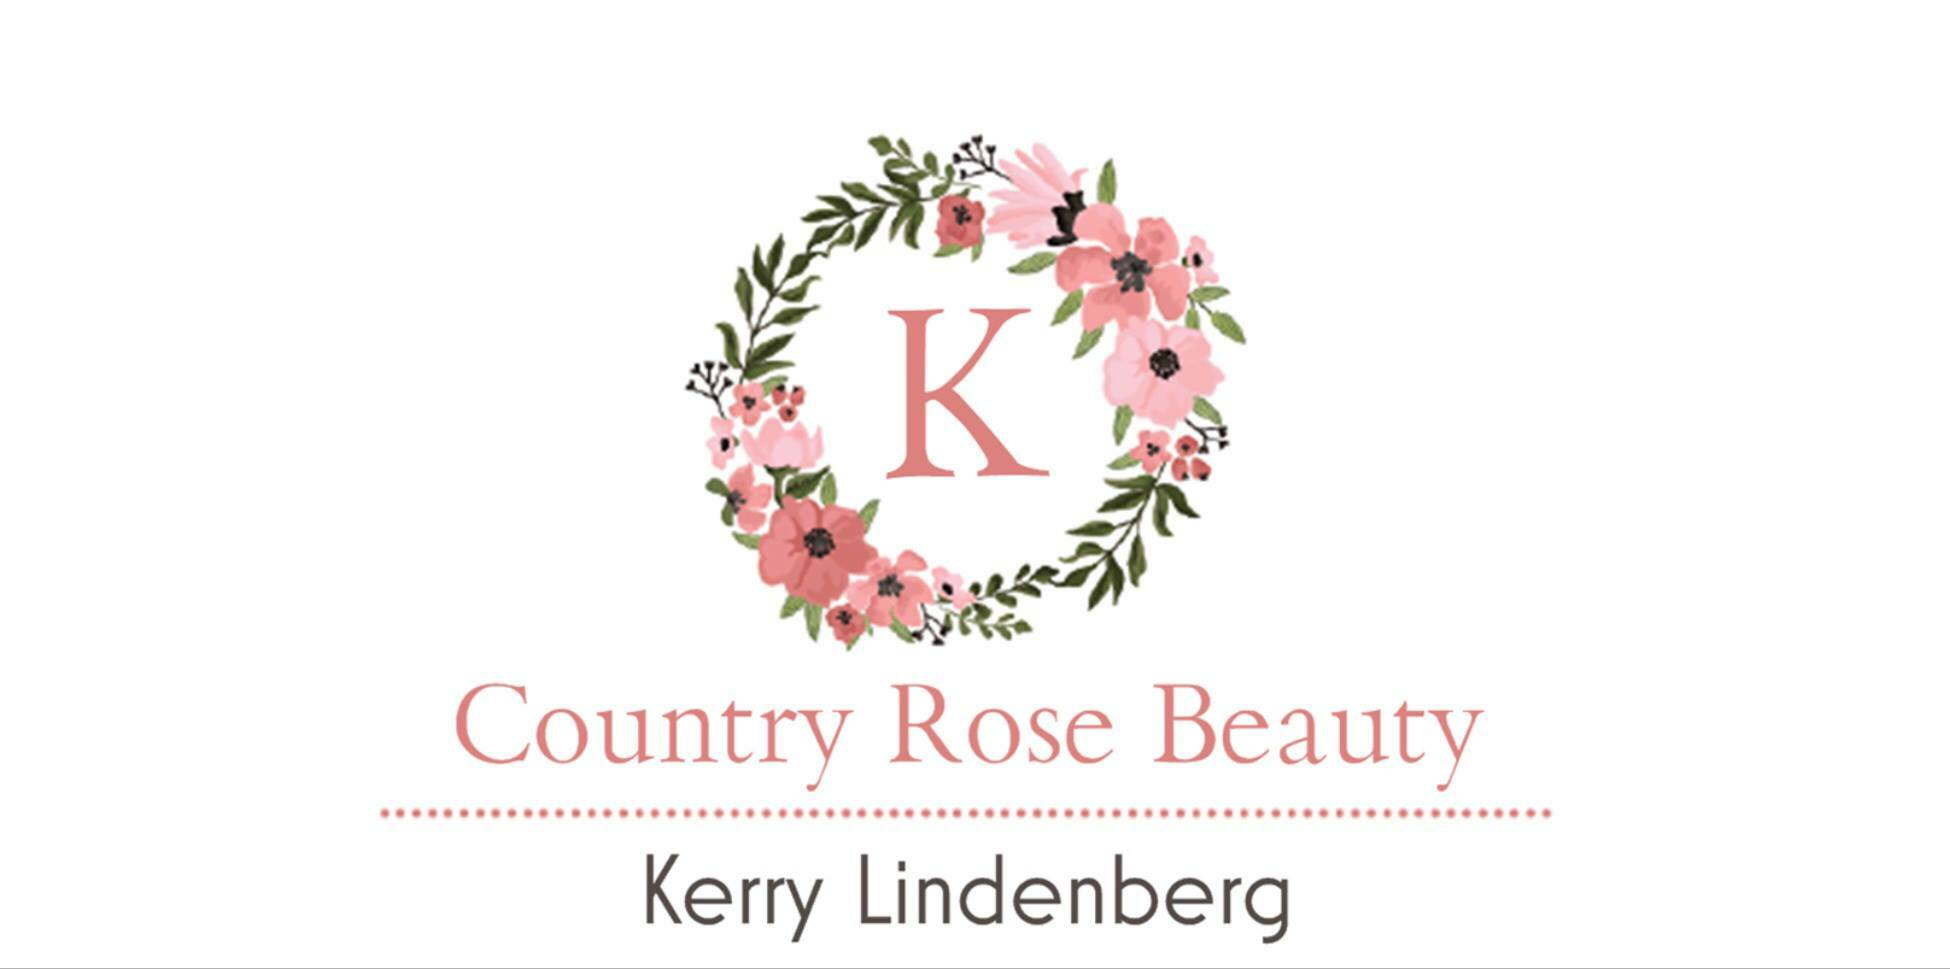 Country Rose Beauty